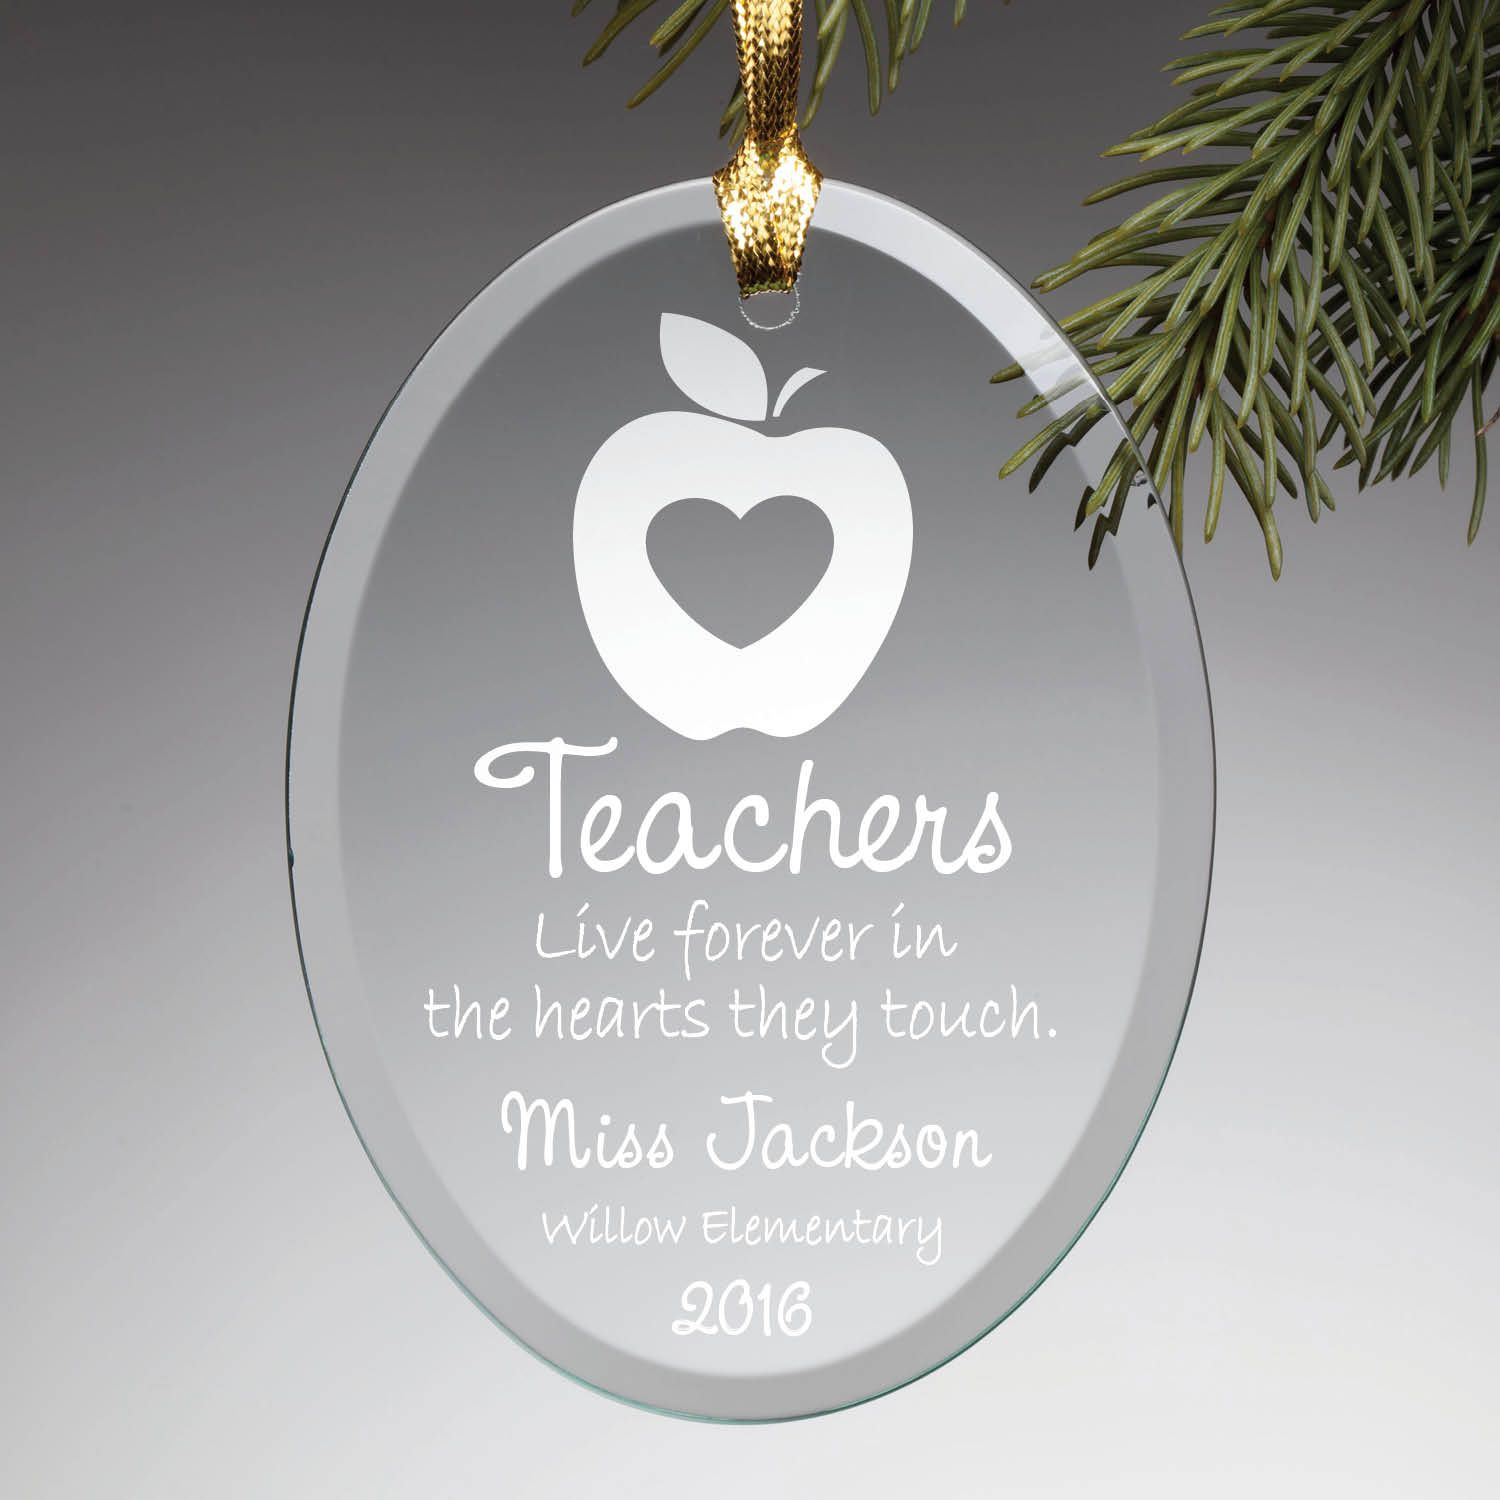 Engraved glass ornaments - Special Teacher Personalized Glass Ornament